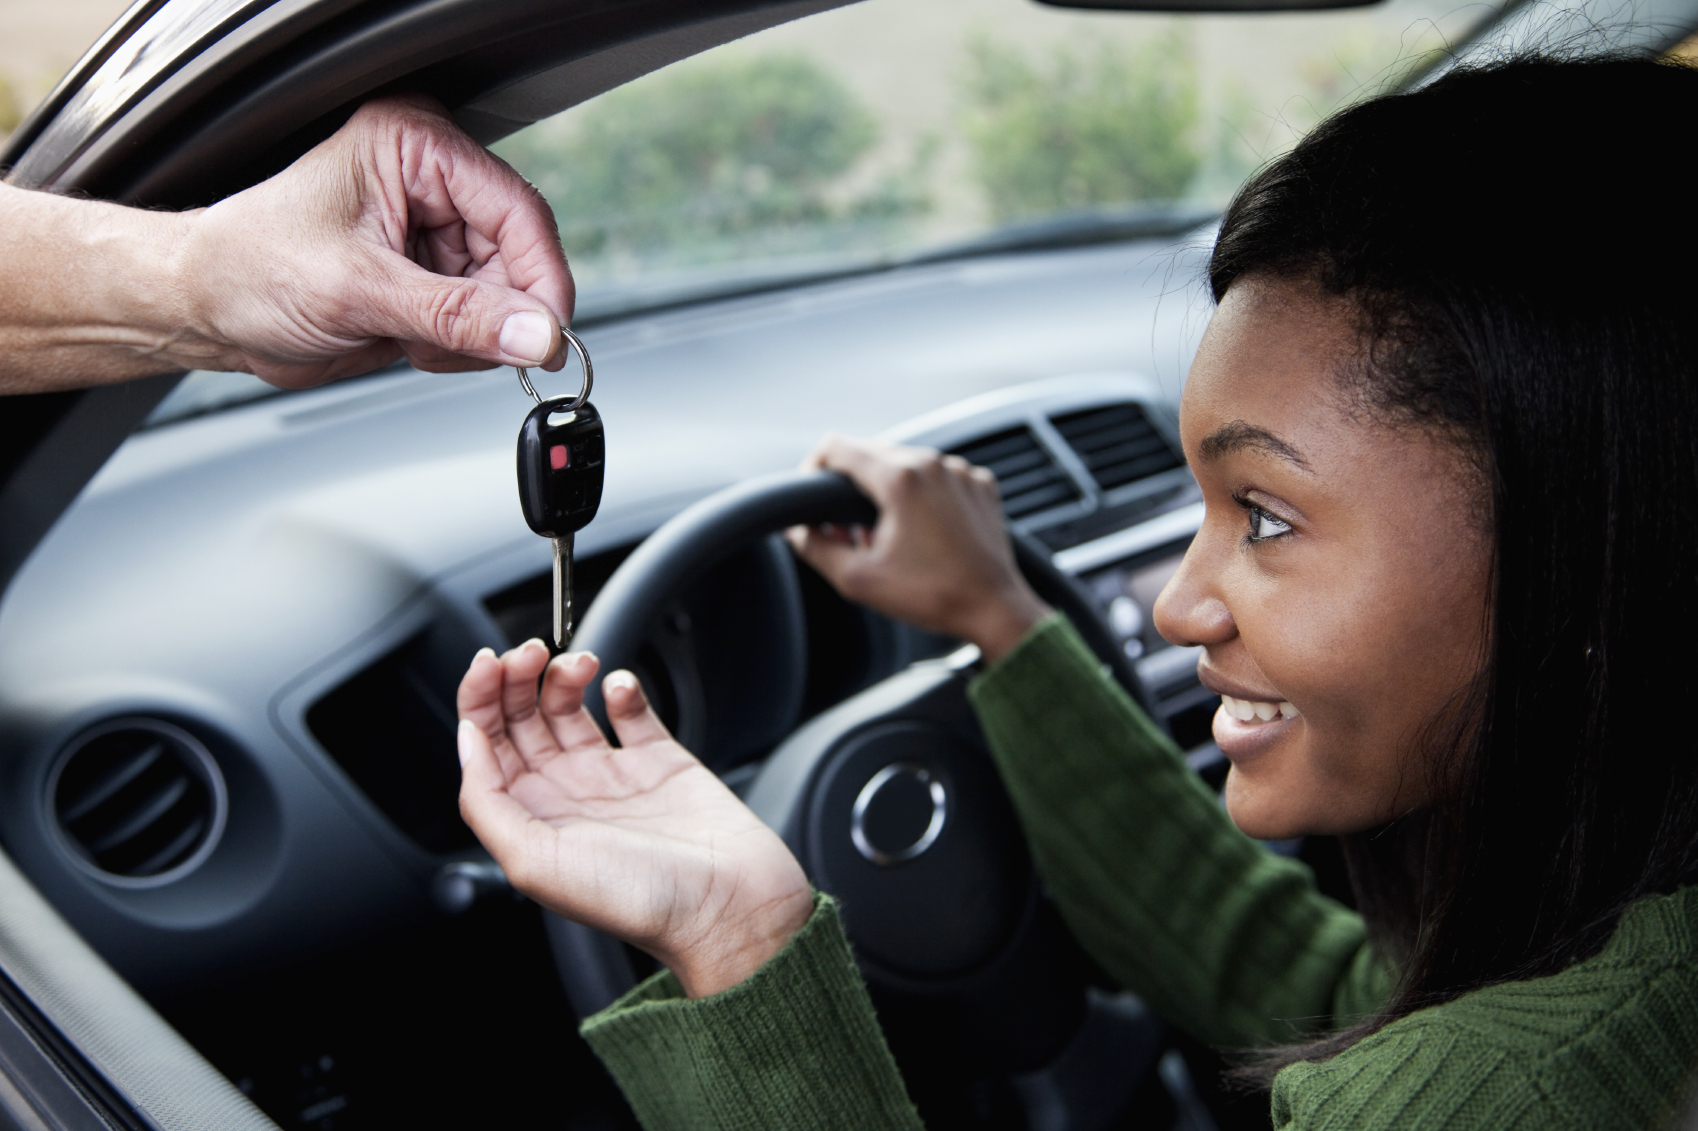 Teen driver driver education inquiry